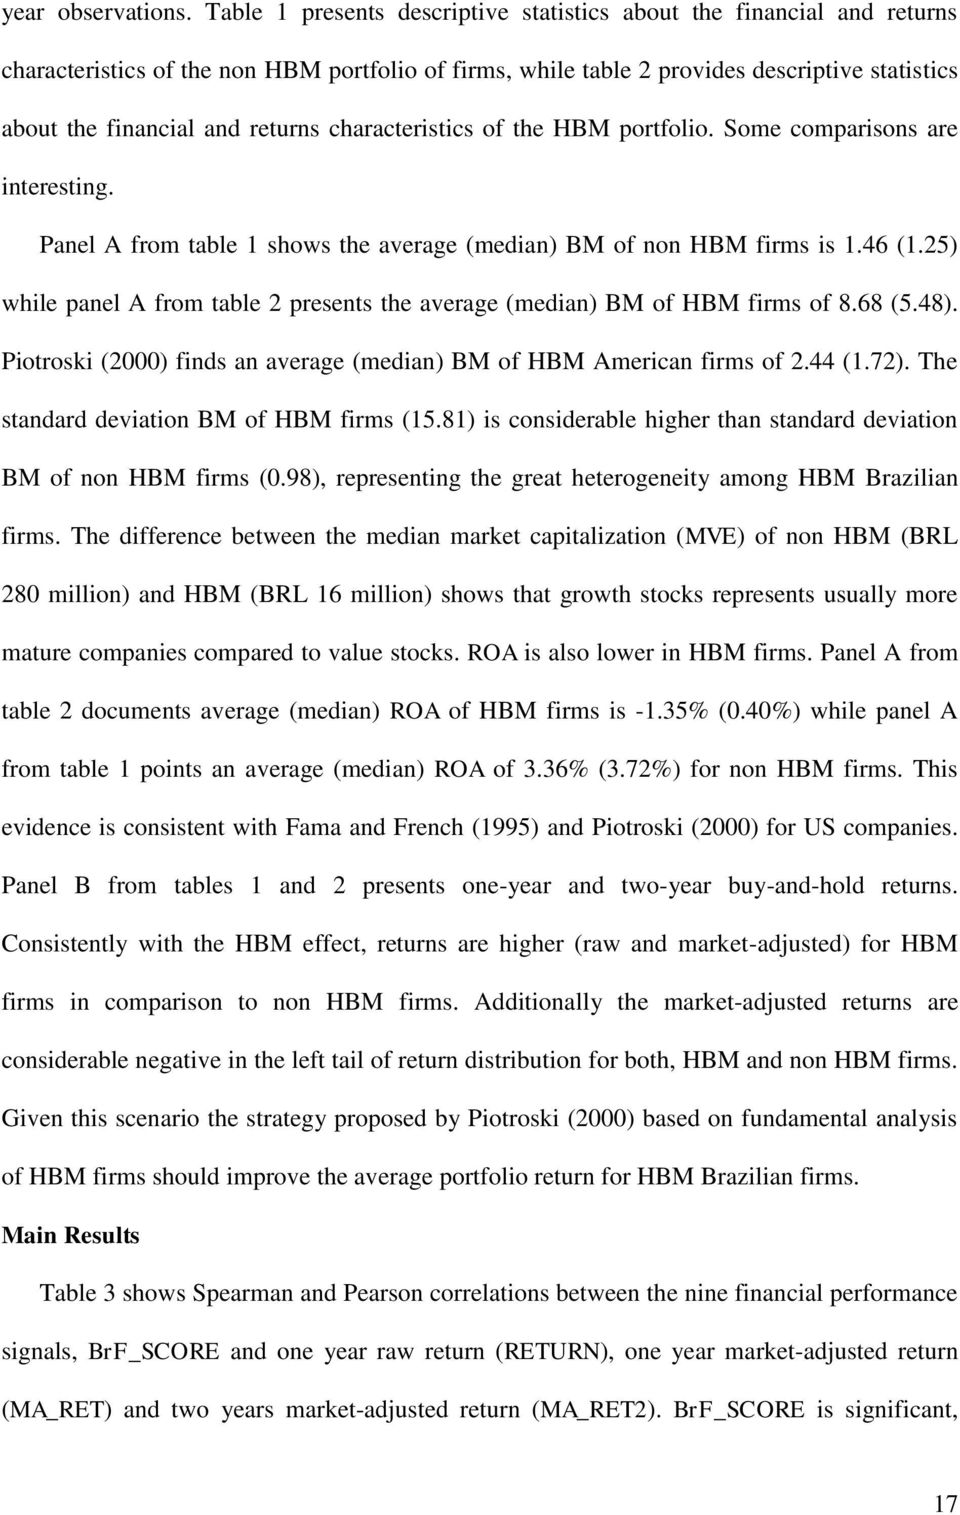 returns characteristics of the HBM portfolio. Some comparisons are interesting. Panel A from table 1 shows the average (median) BM of non HBM firms is 1.46 (1.